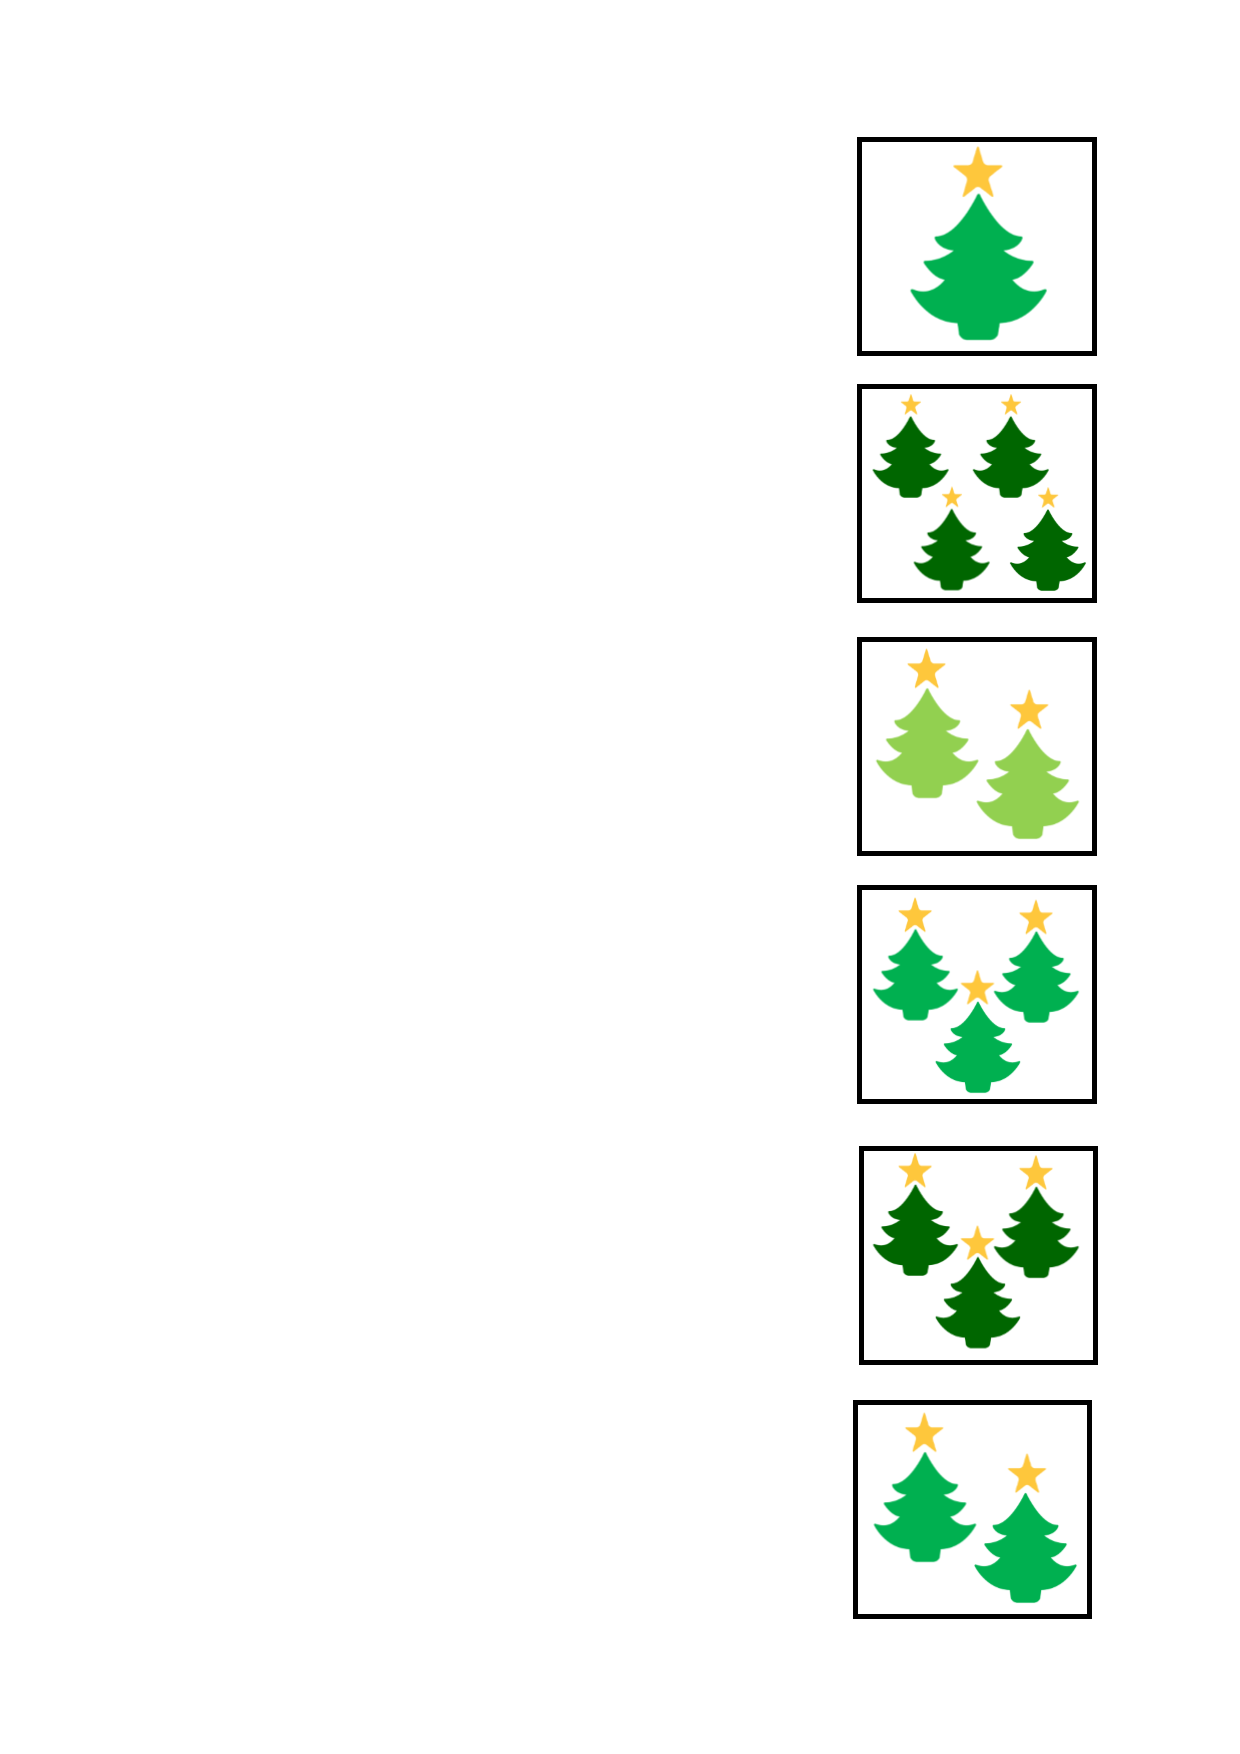 Tiles For The Christmas Tree Logic Game Find The